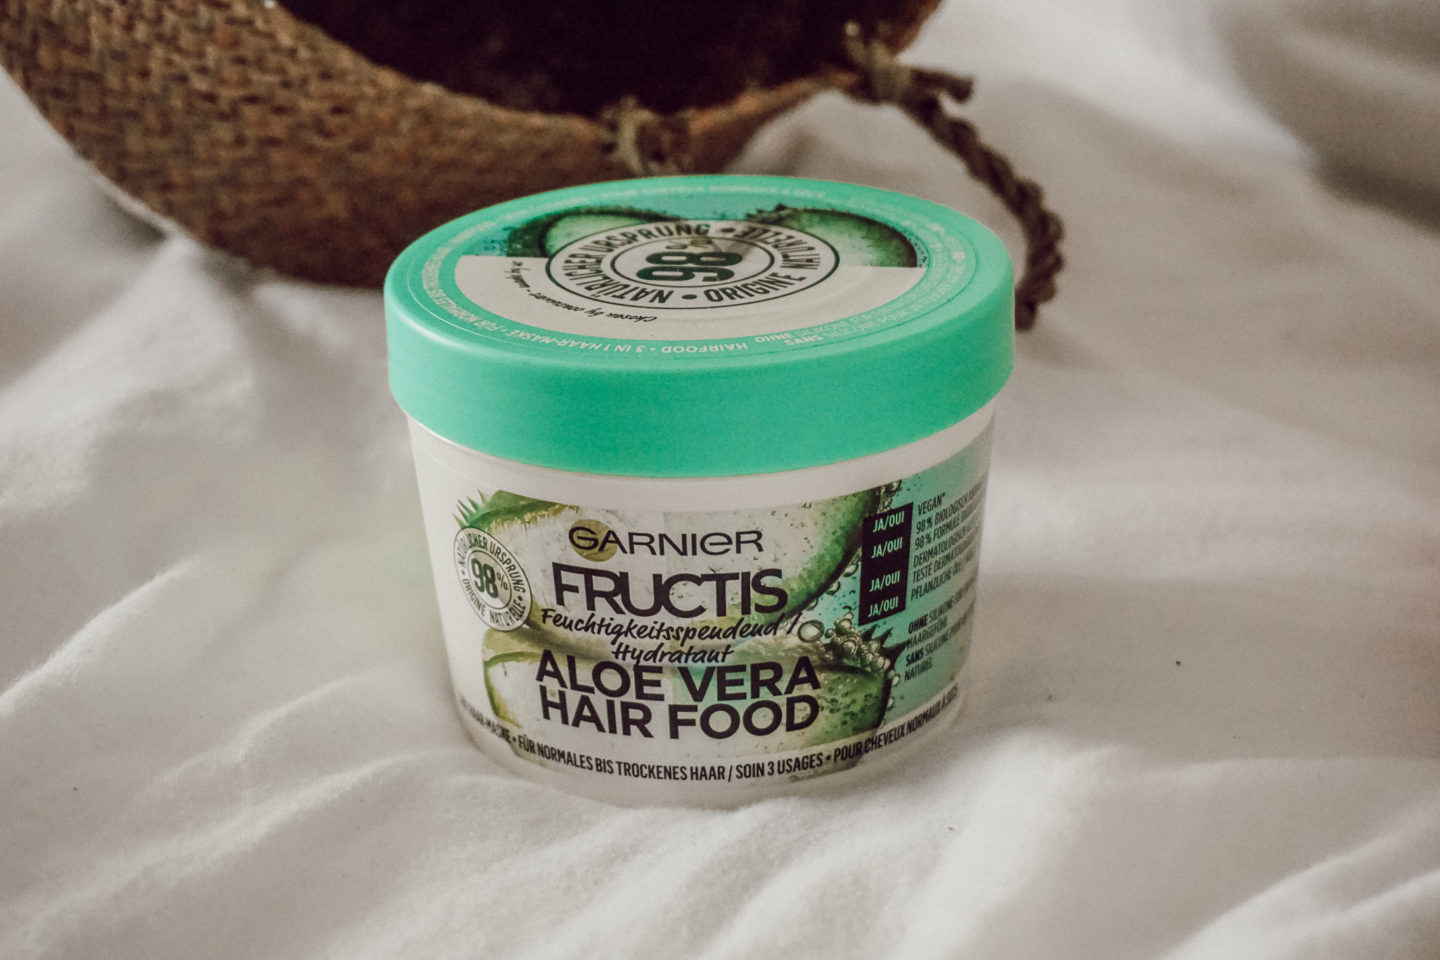 Fructis Aloe Vera Hair Food